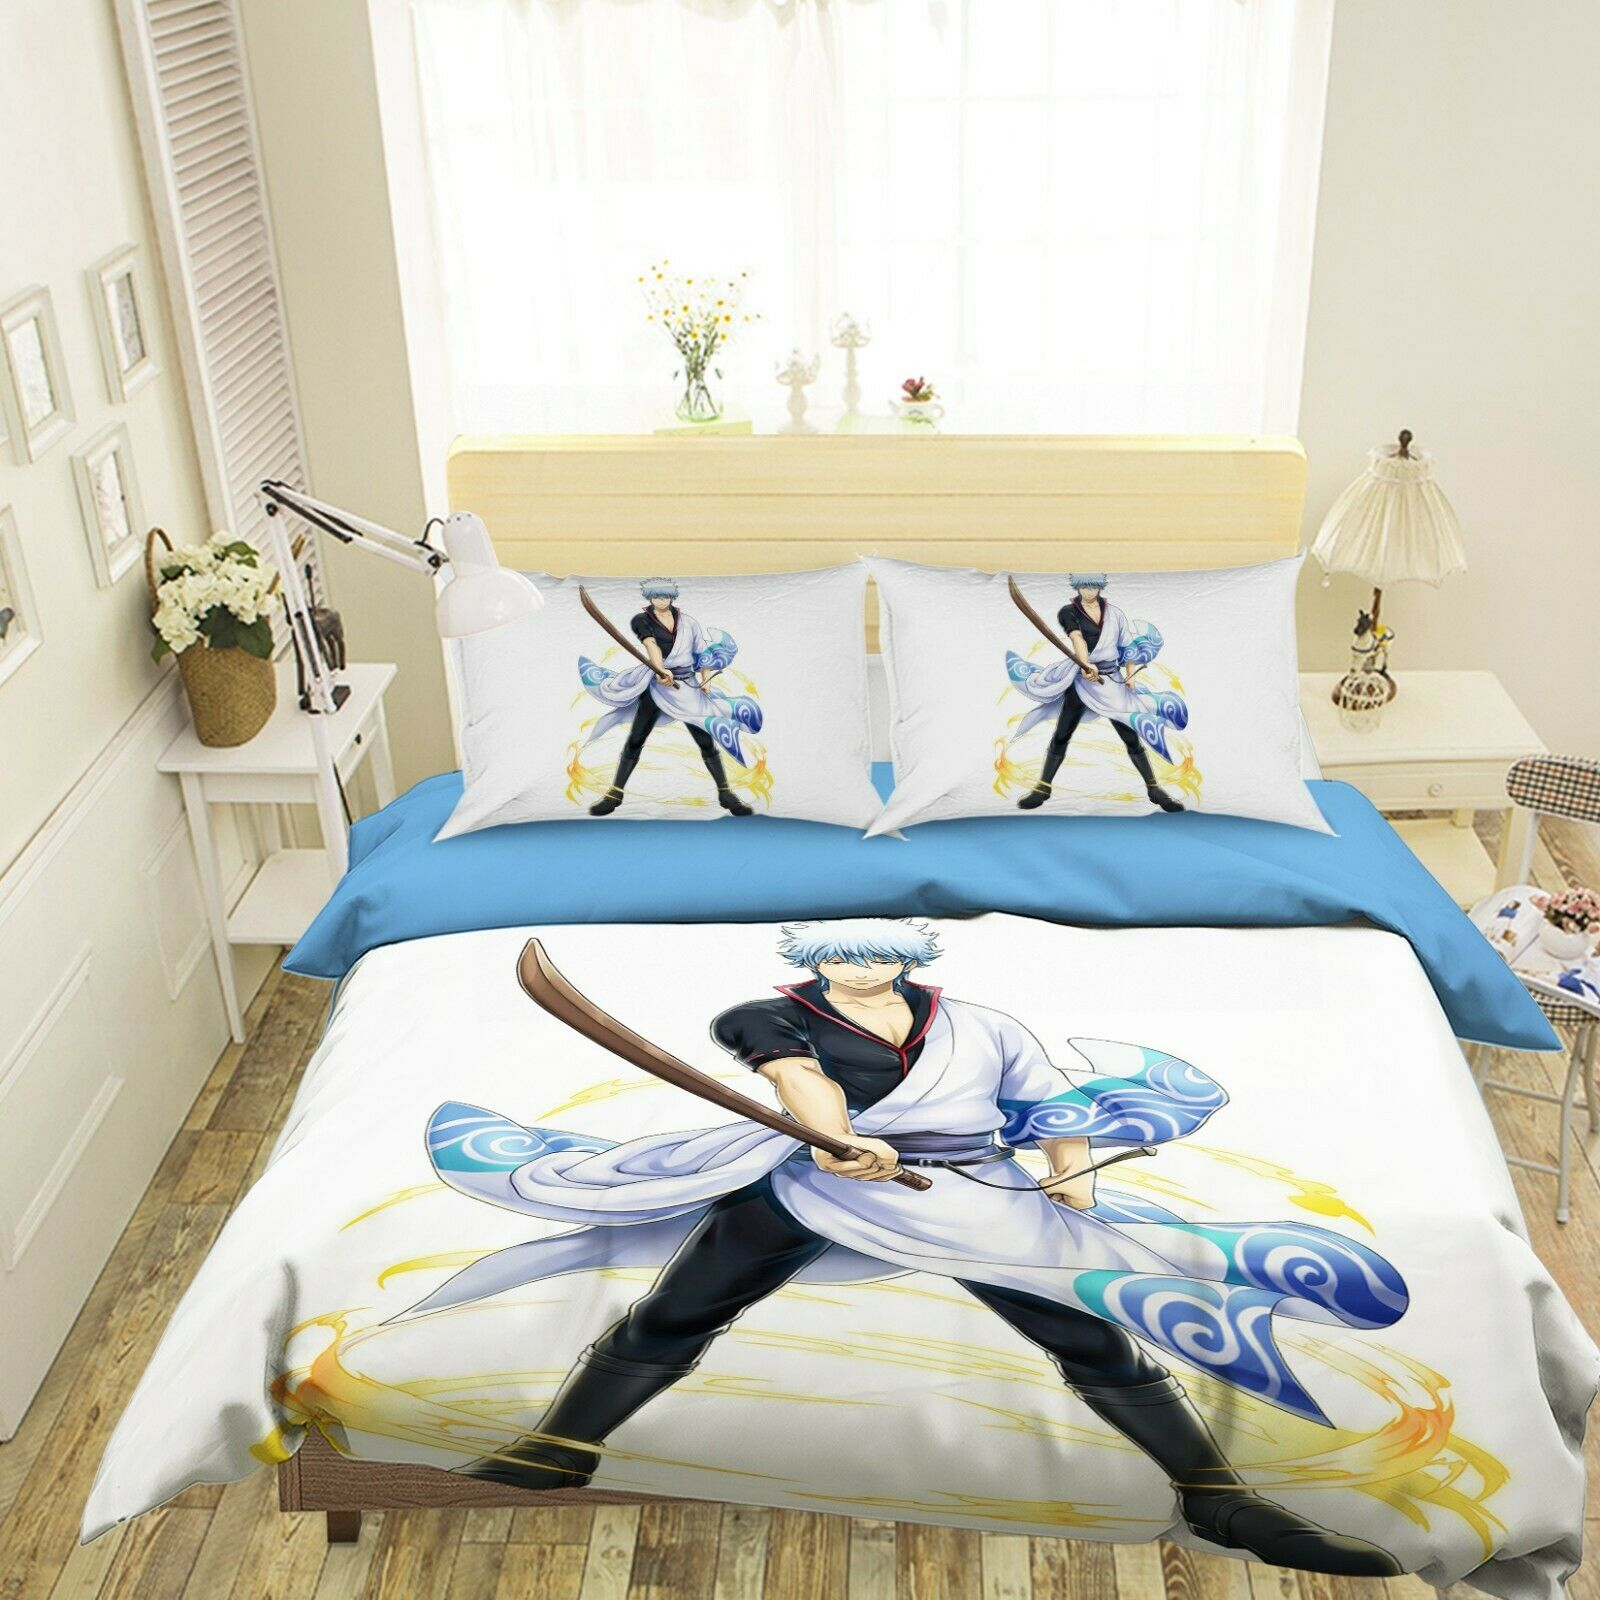 3D GinTama Warrior B052 Japan Anime Bett Pillowcases Quilt Duvet Startseite Wendy